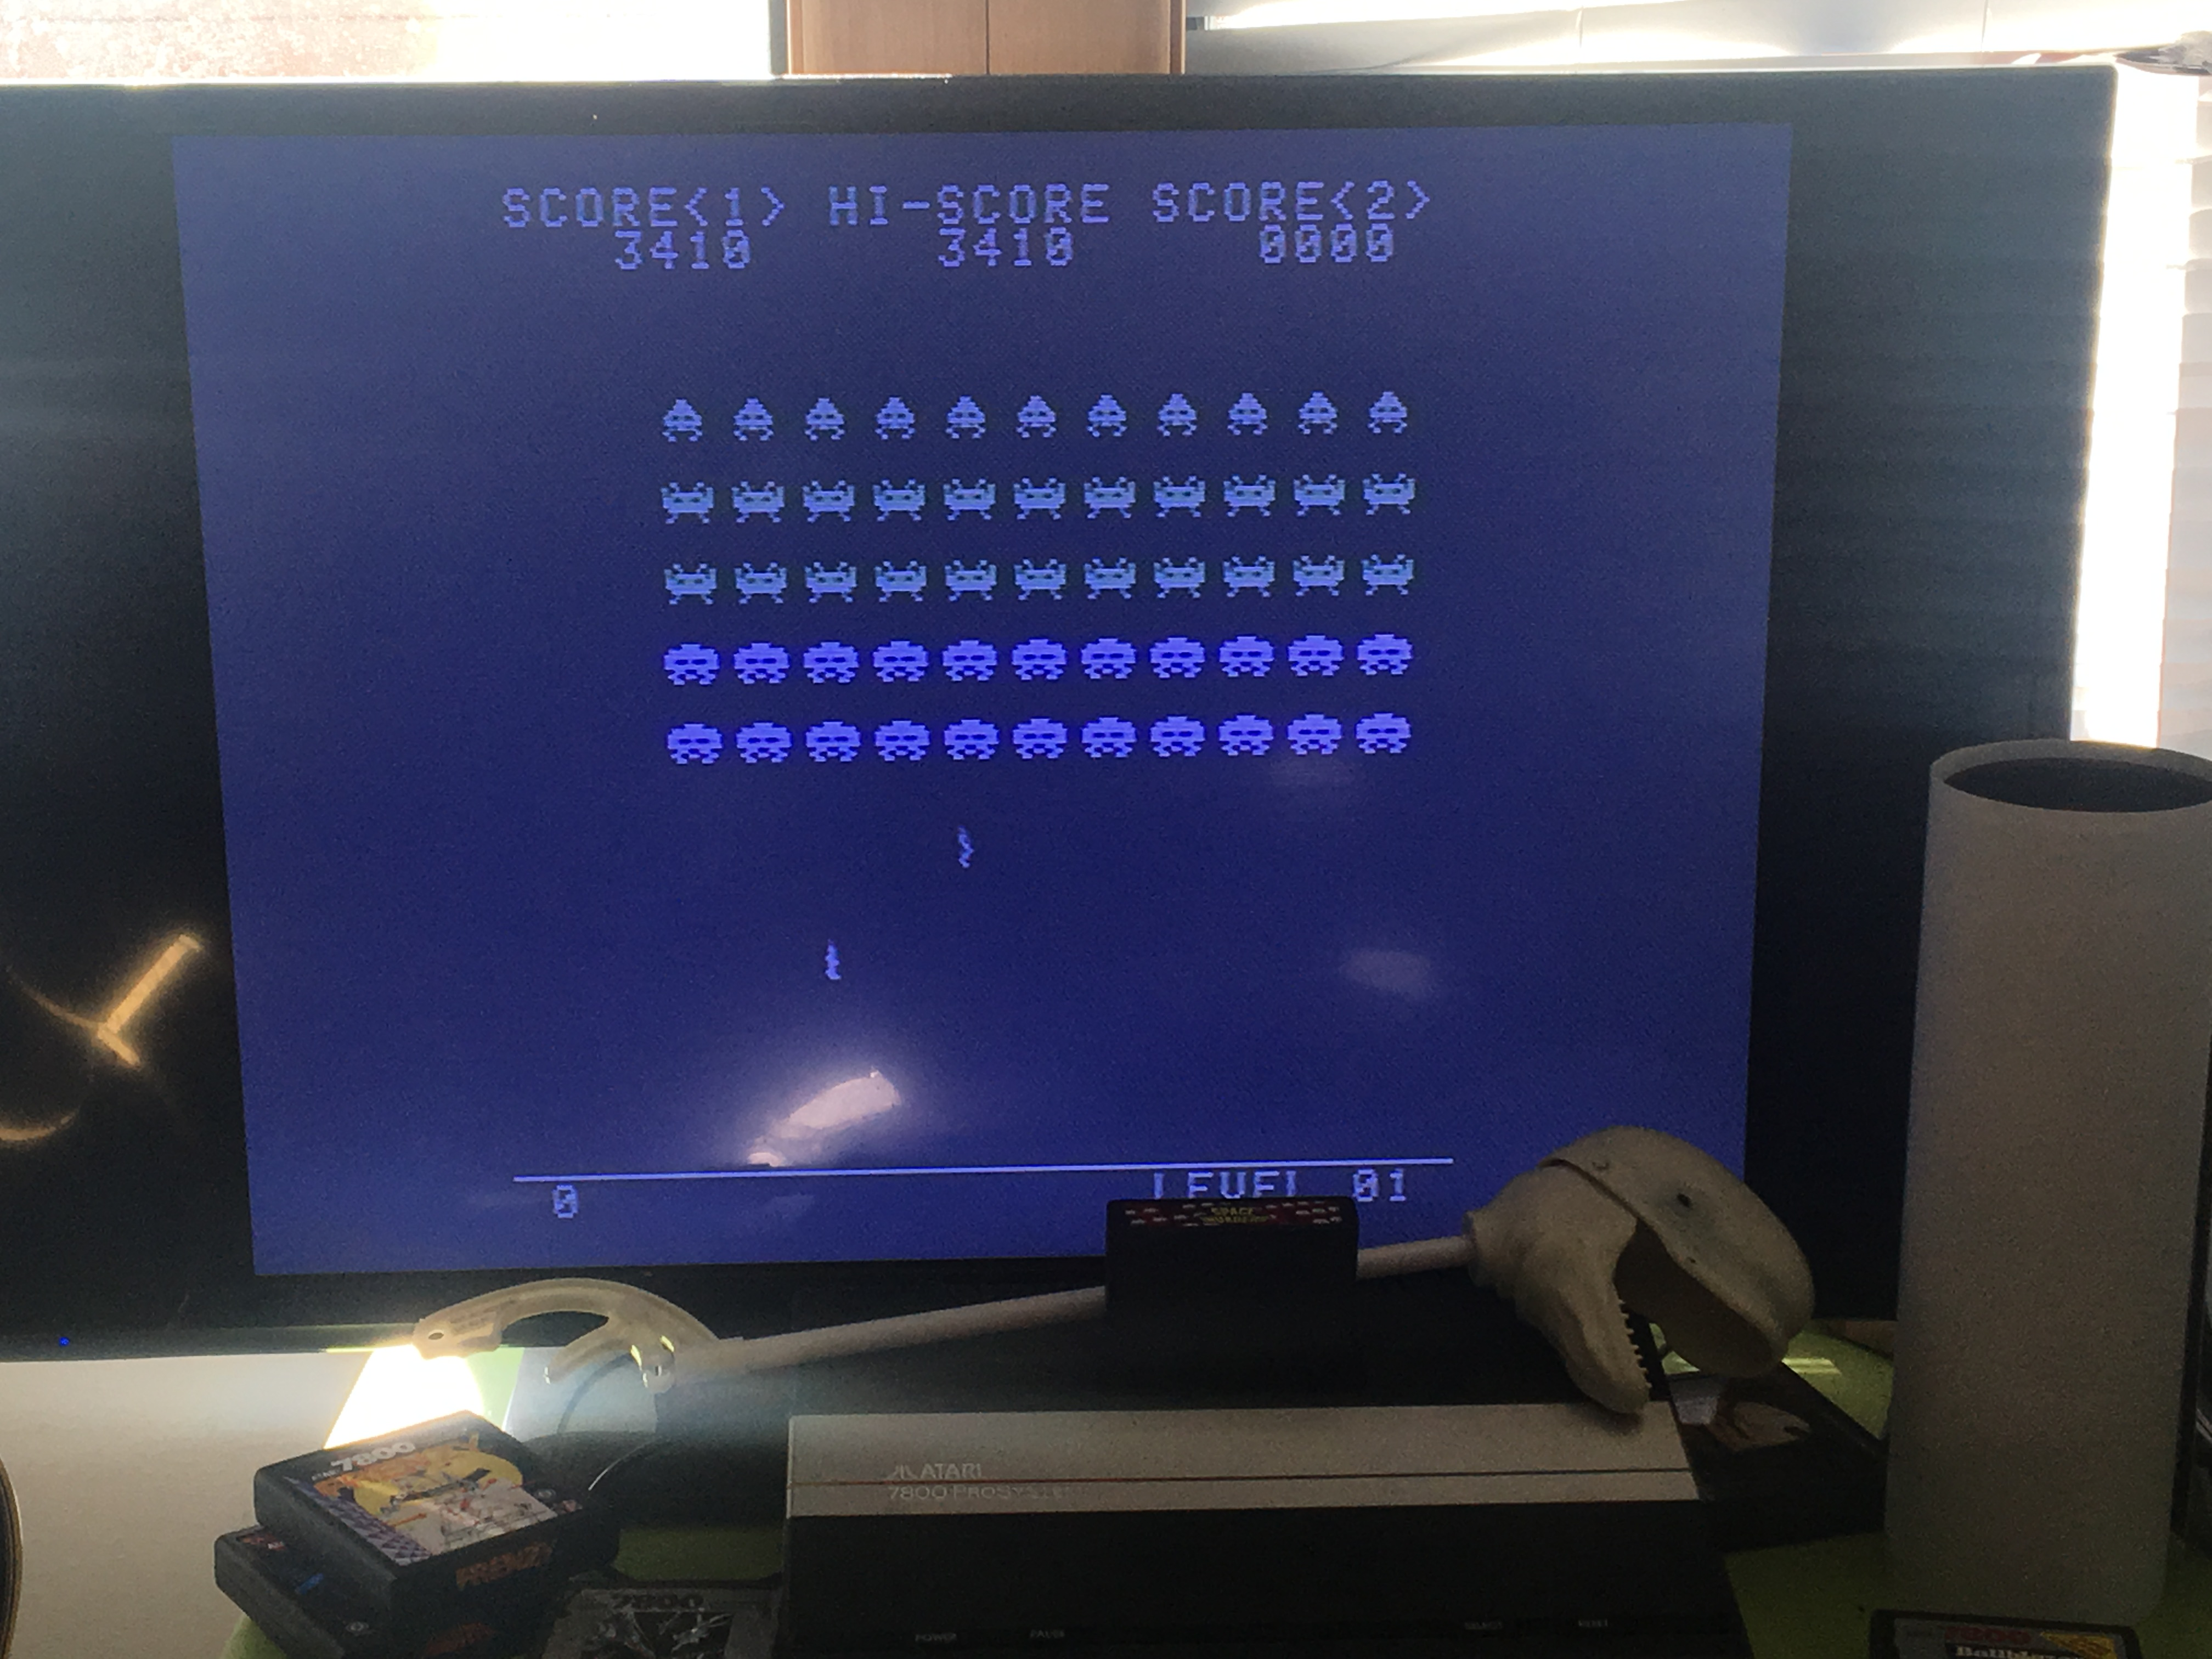 Space Invaders [Normal/No Shields/Zig-Zagging] 3,410 points